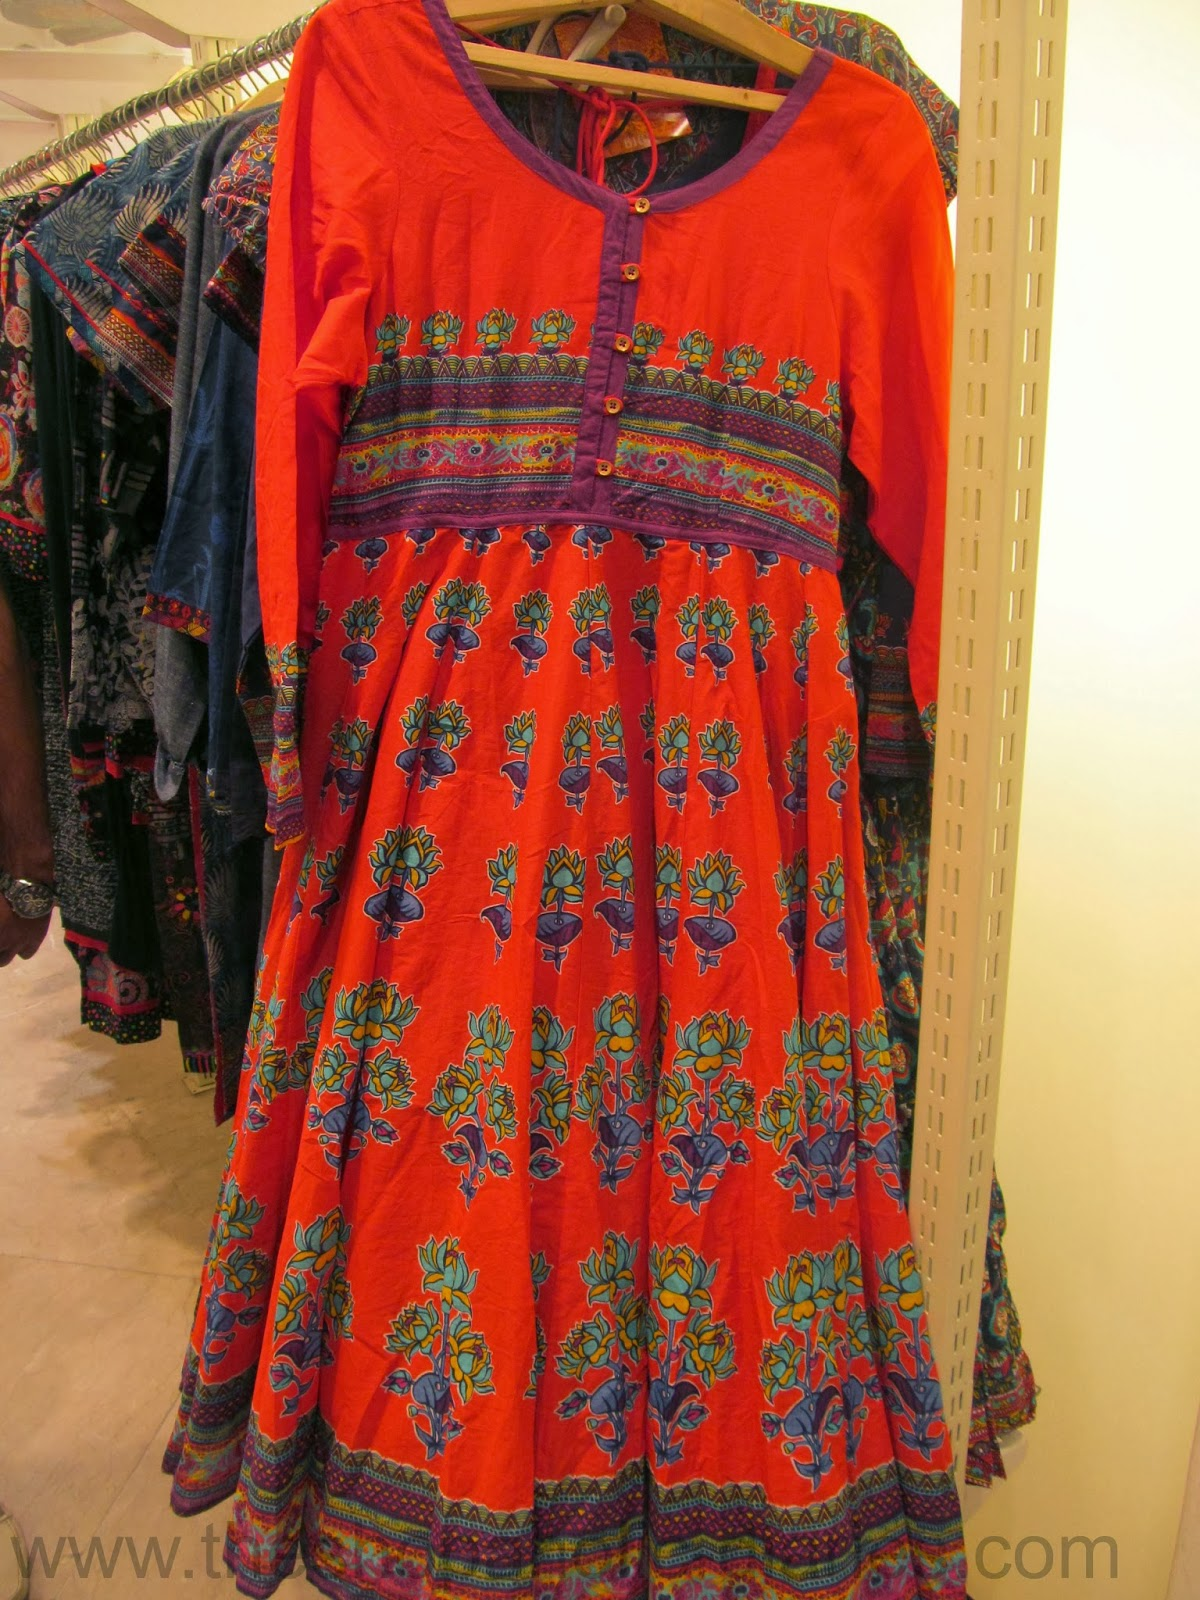 BIBA Latest Summer 2012 collection for Women | She-Styles ...